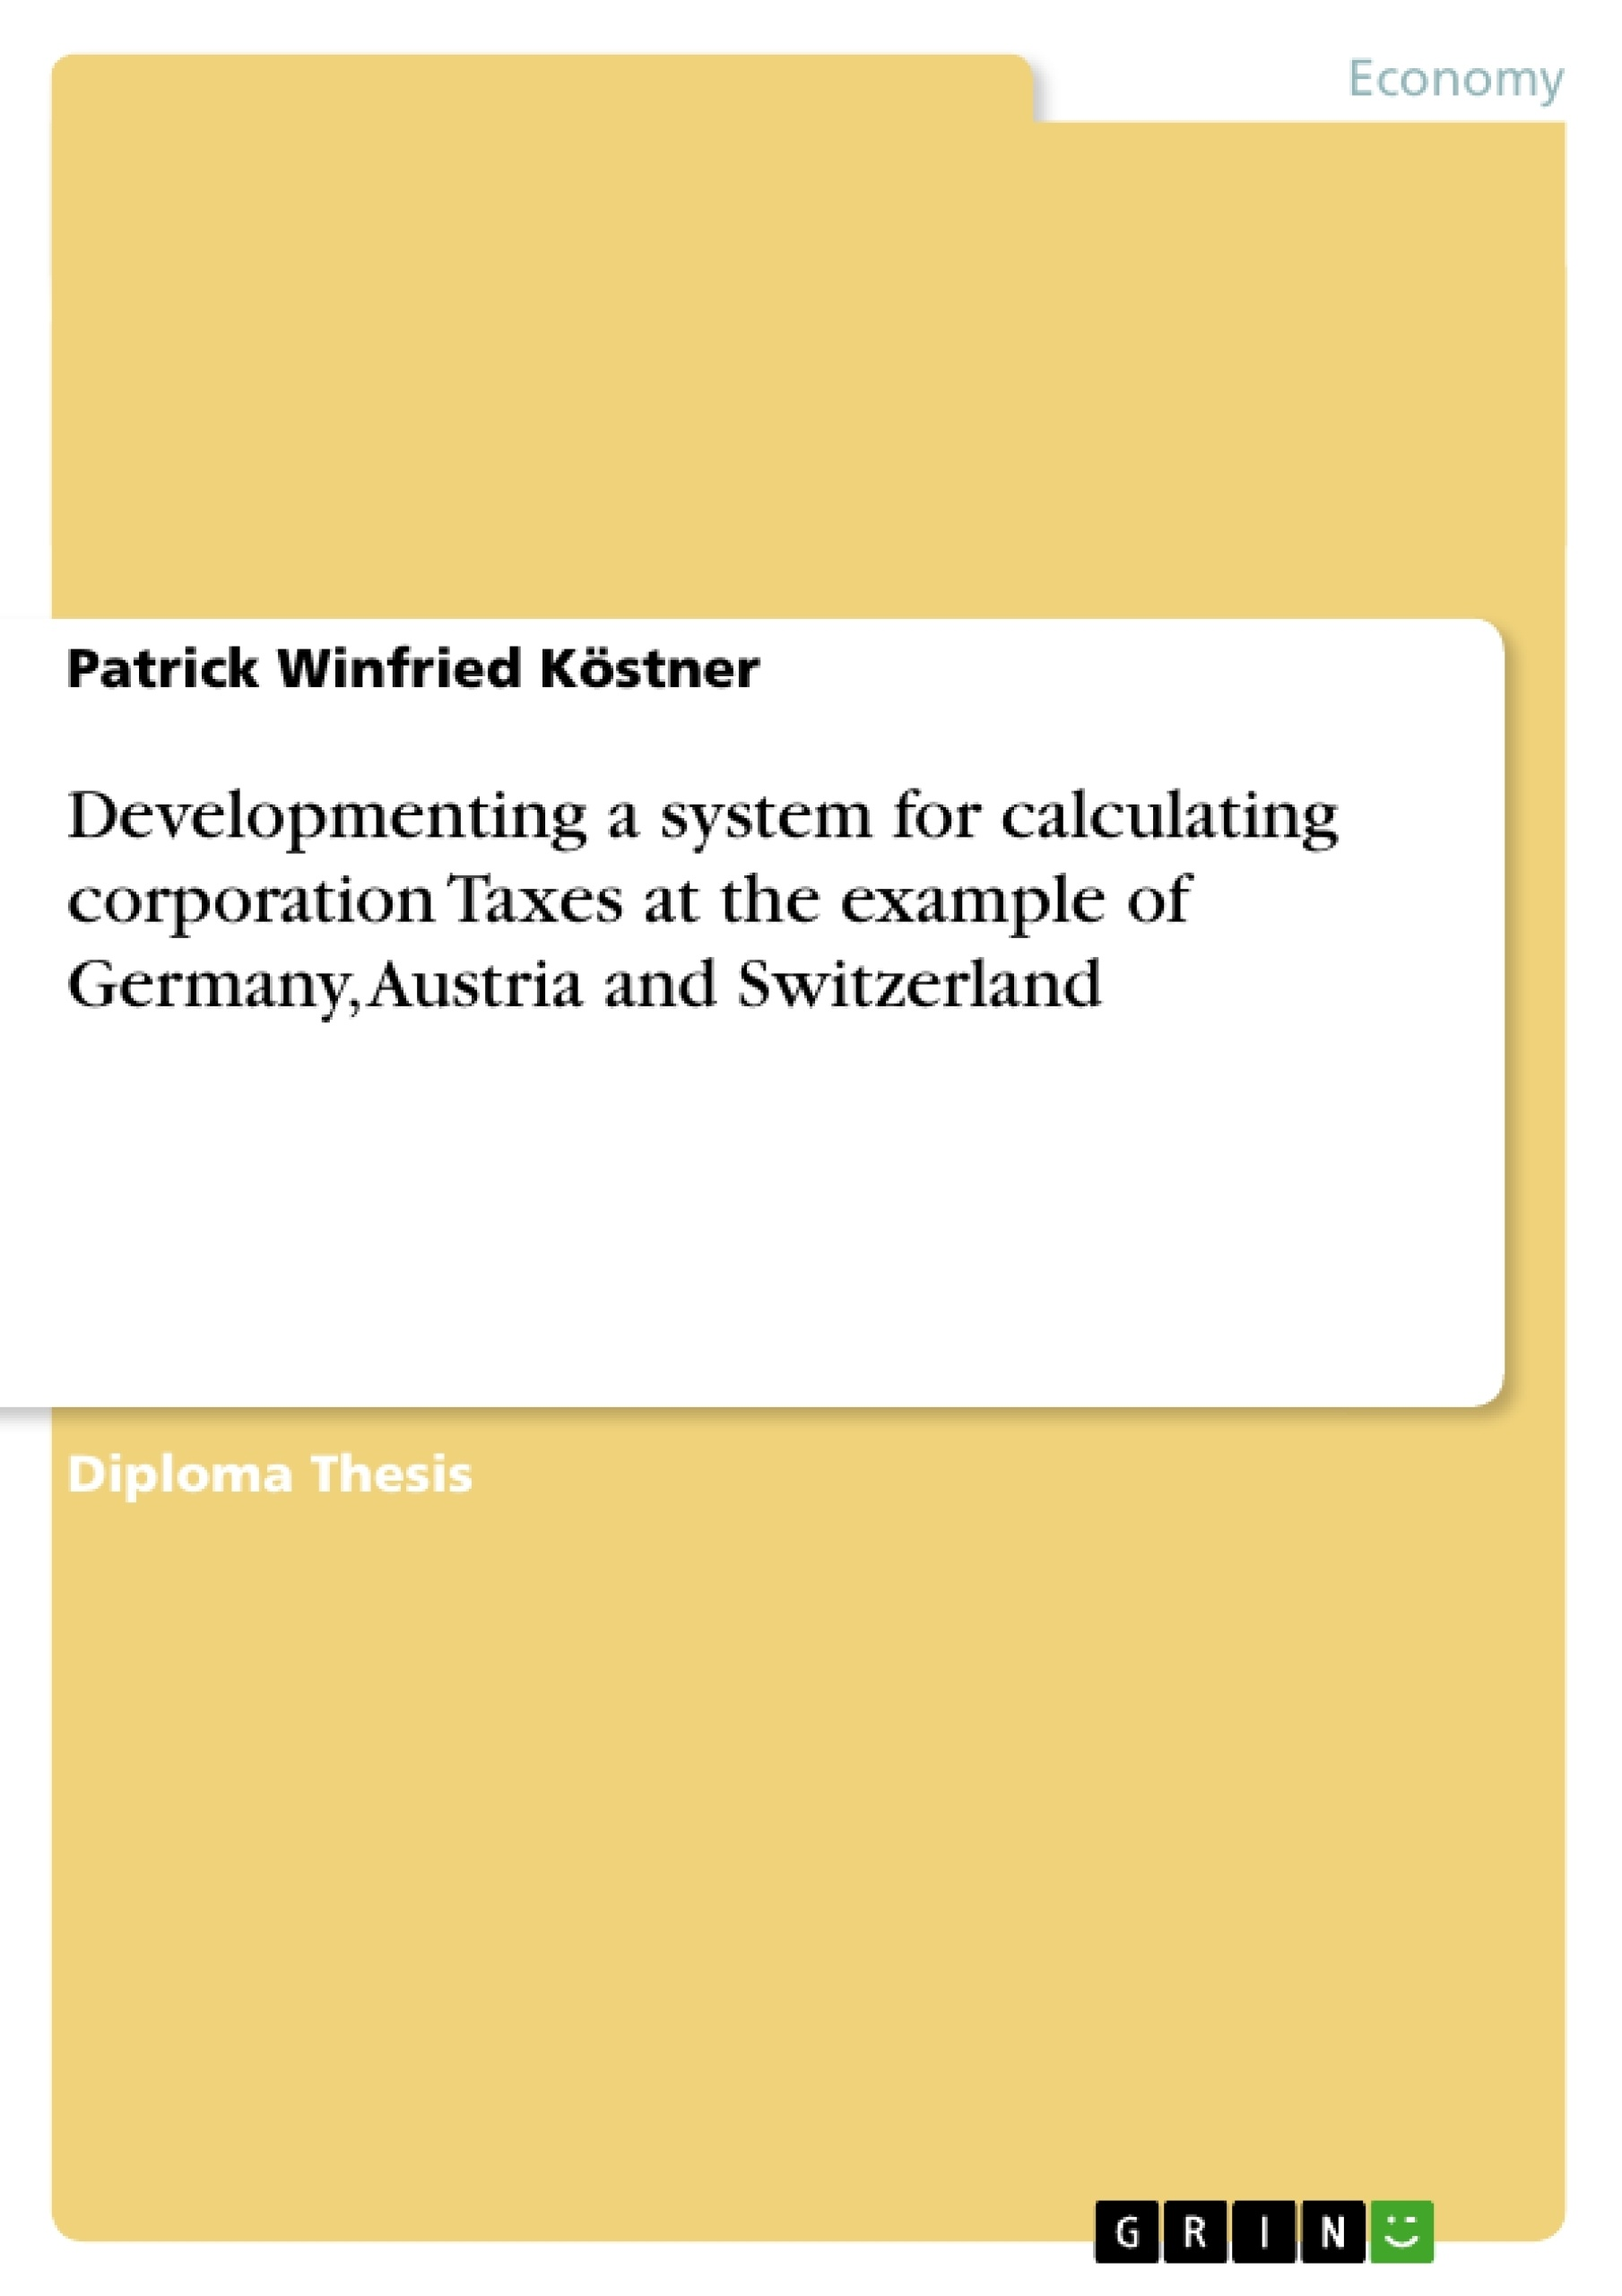 Term papers on corporation